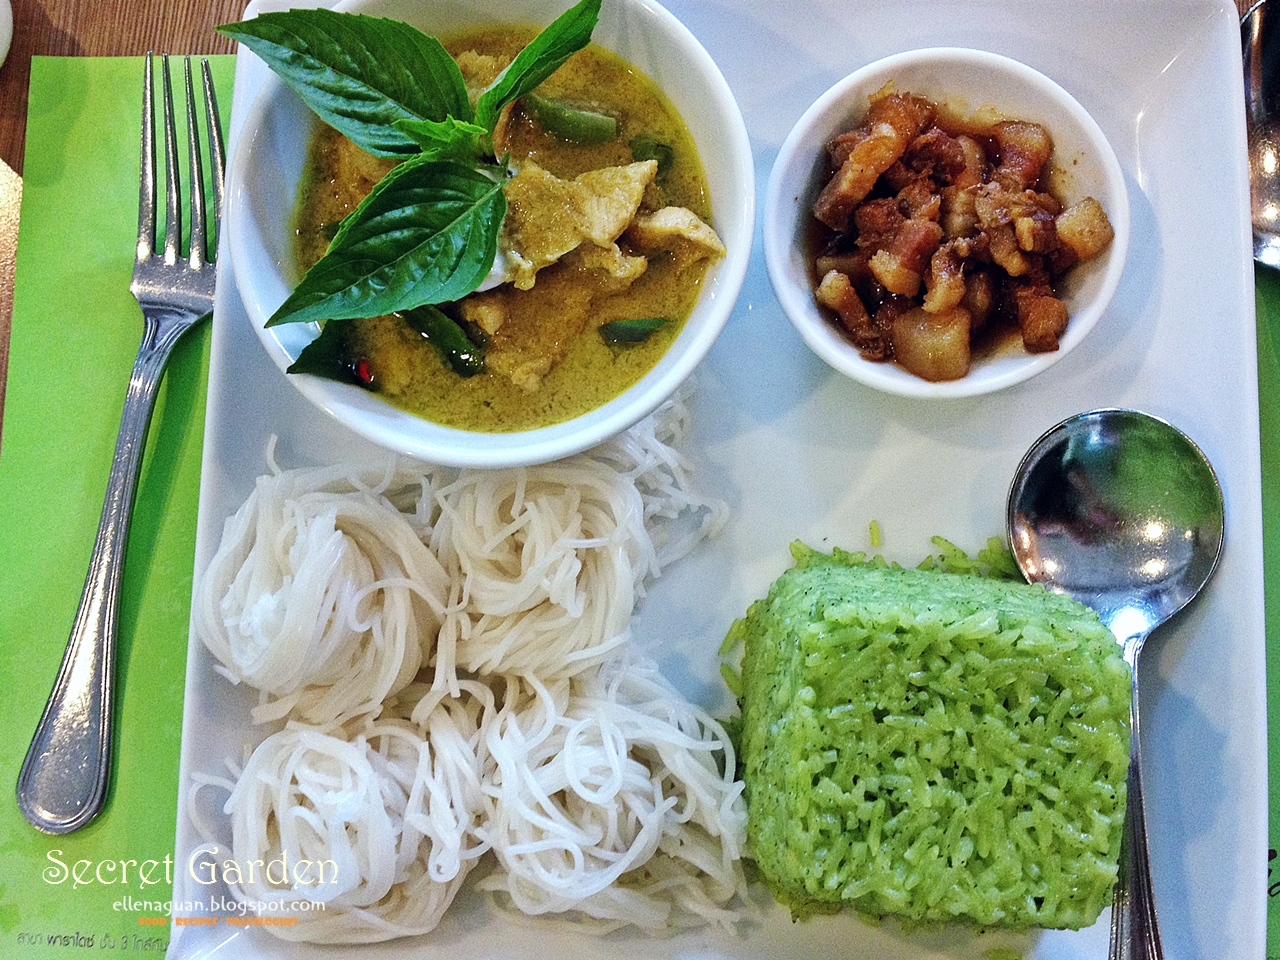 Cuisine paradise singapore food blog recipes reviews and travel secret garden thai cuisine steamed pandan rice and green curry set forumfinder Gallery